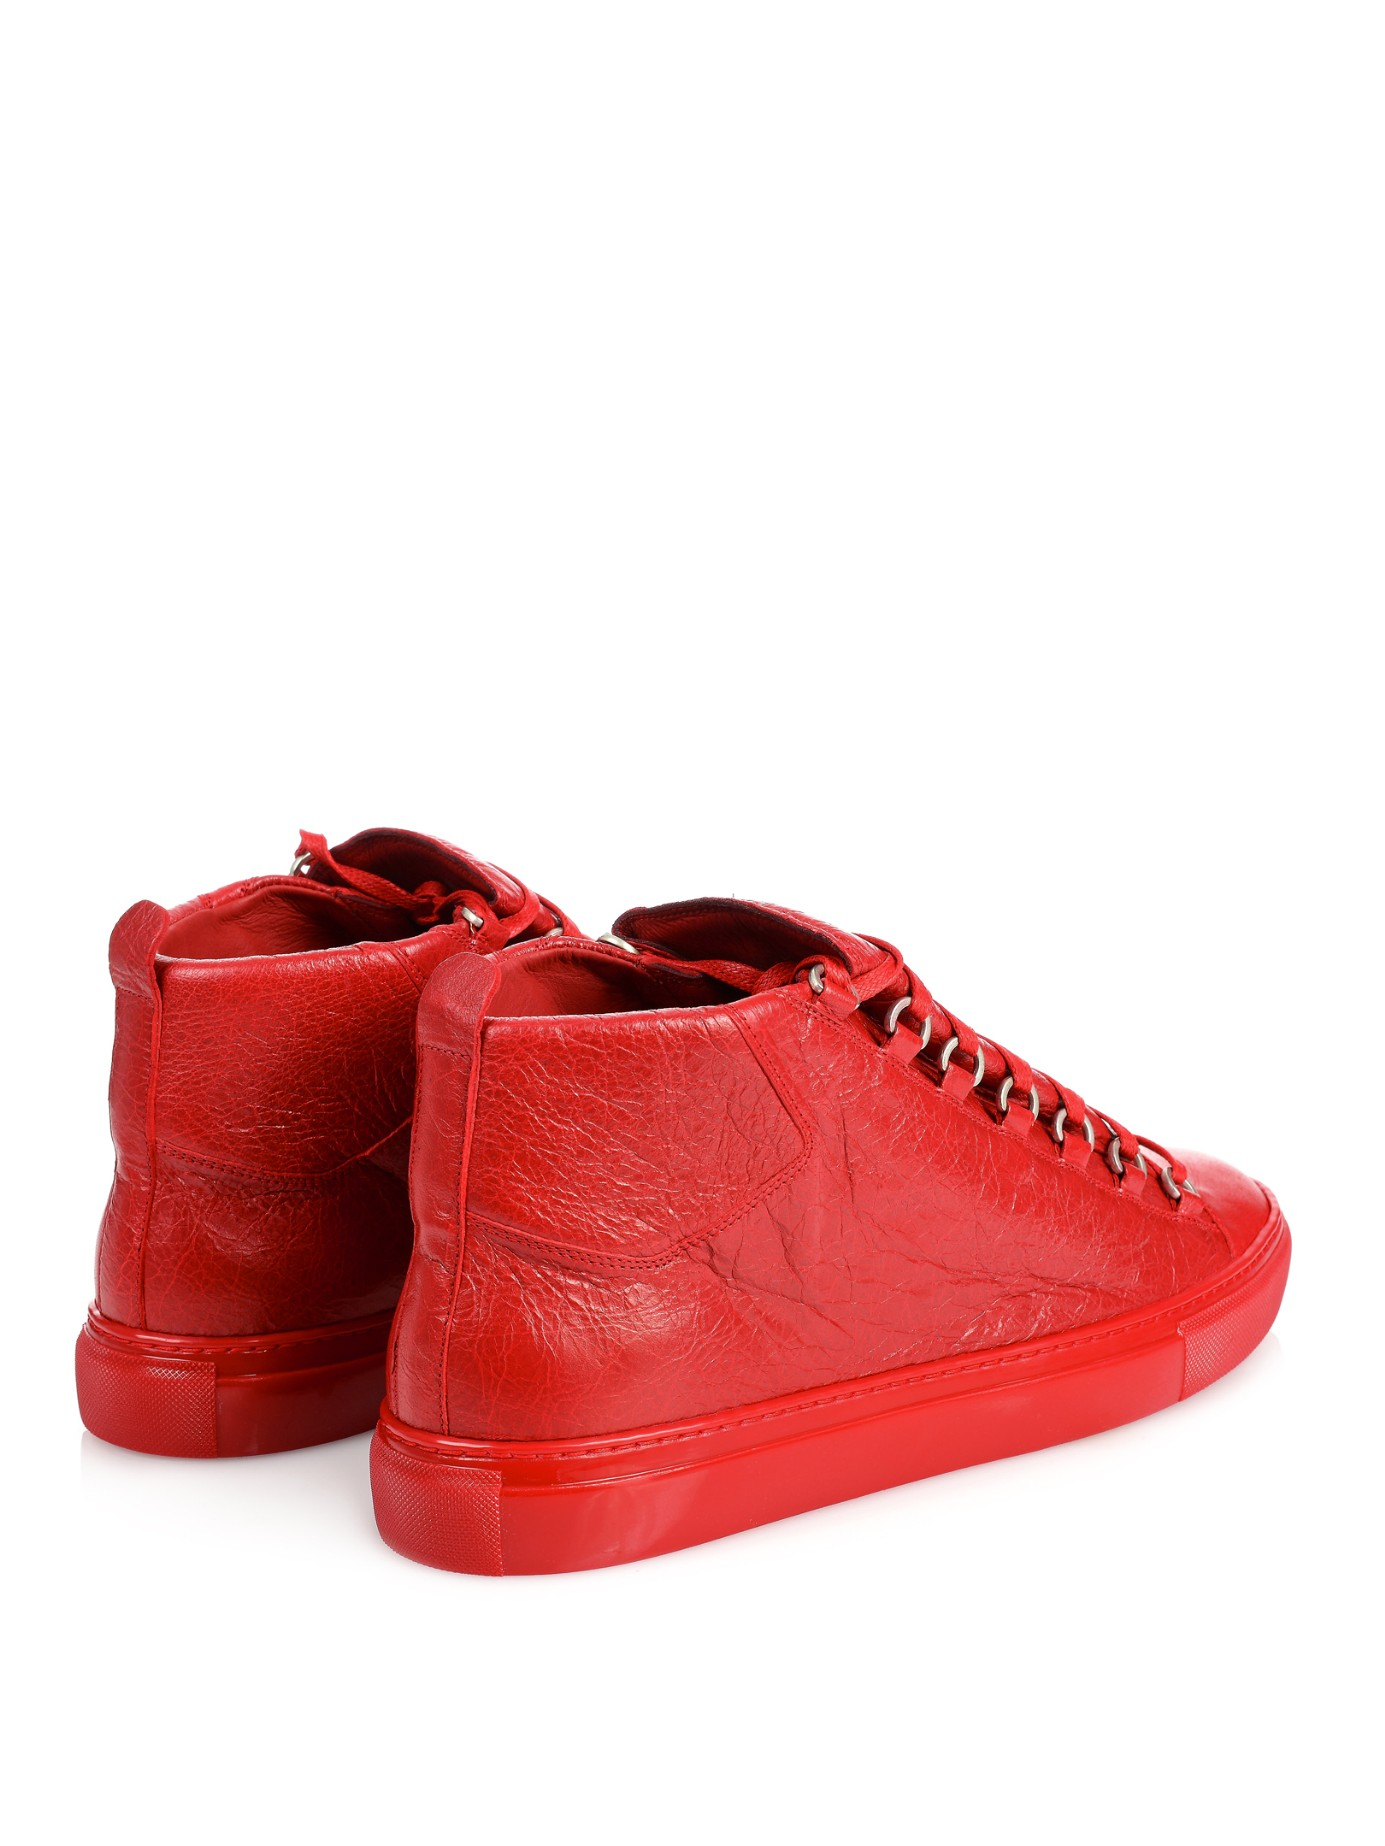 Balenciaga Arena Red Leather High Top Shoes